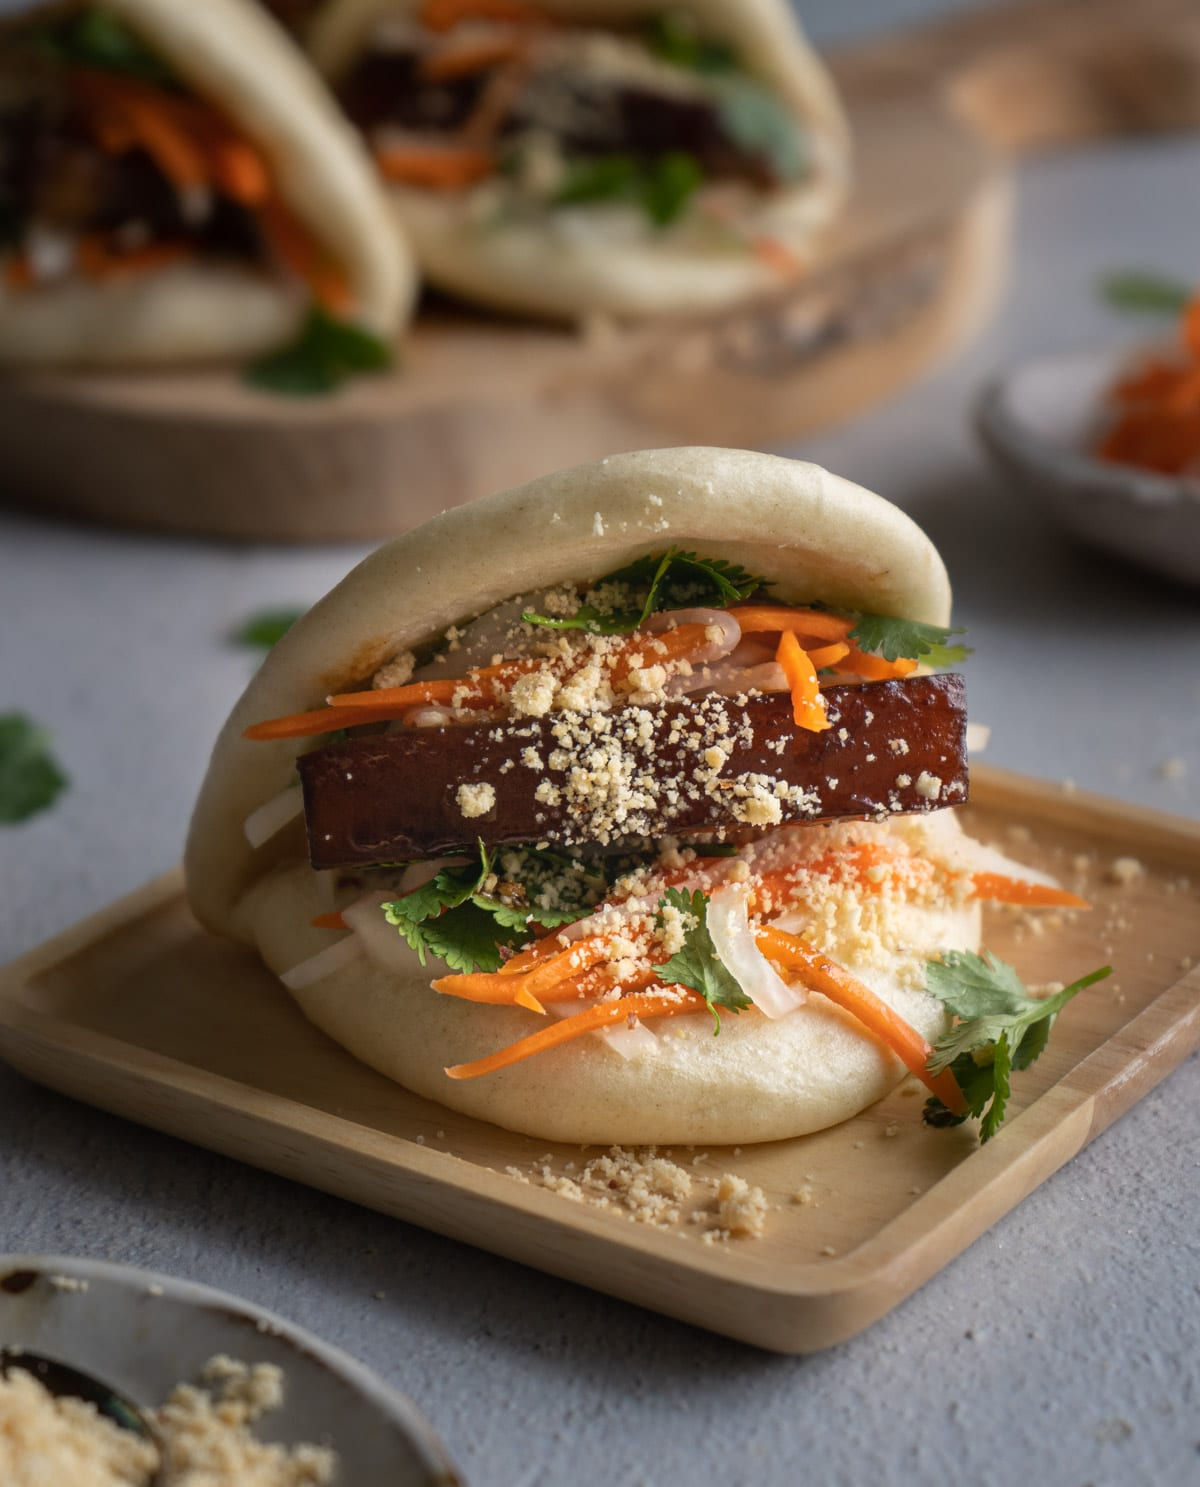 Gua bao on a wooden plate.